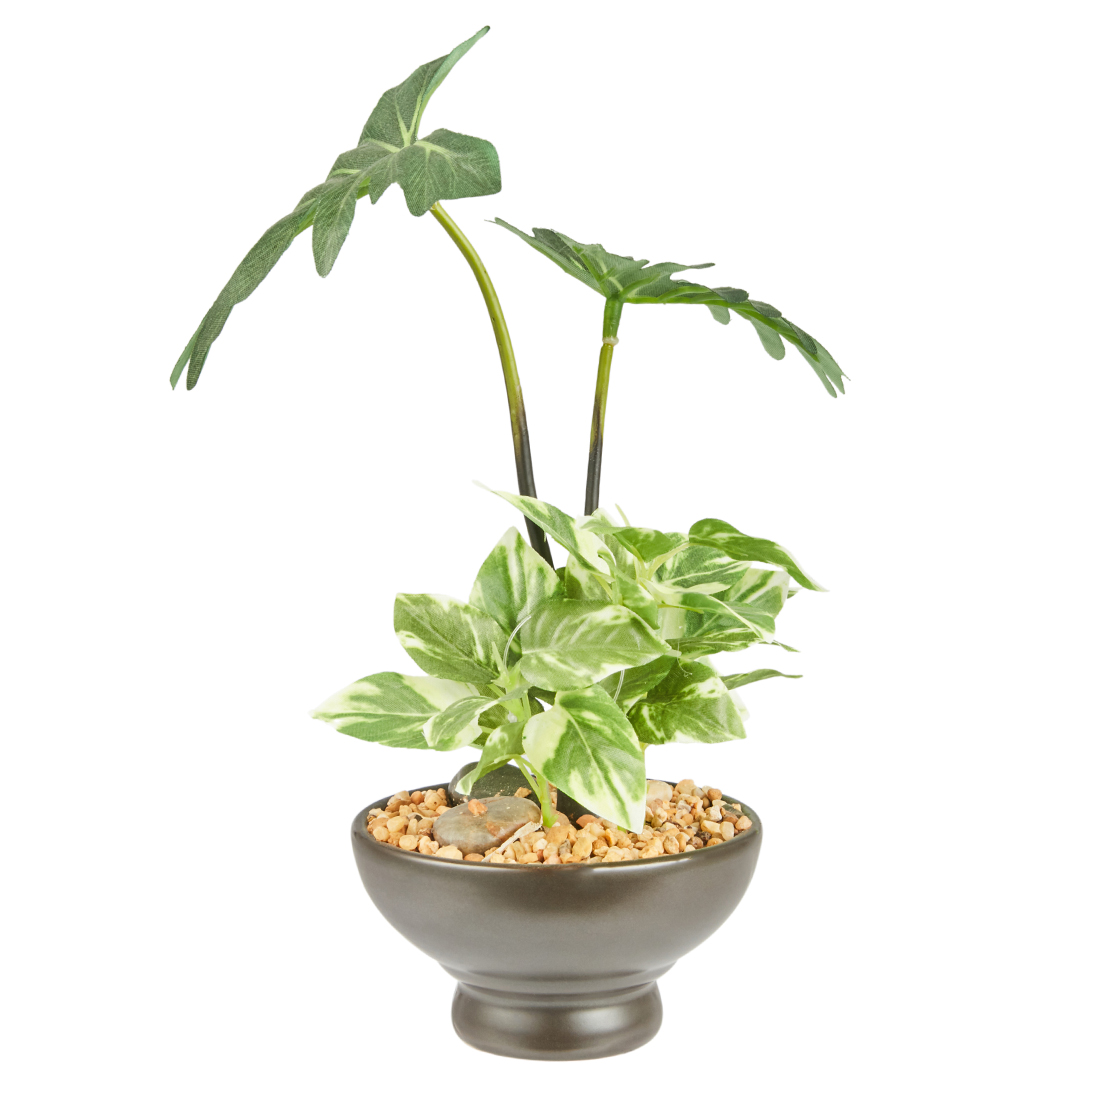 Sage Philoden Plant 23 Cm Artificial Plants in Green Colour by Living Essence